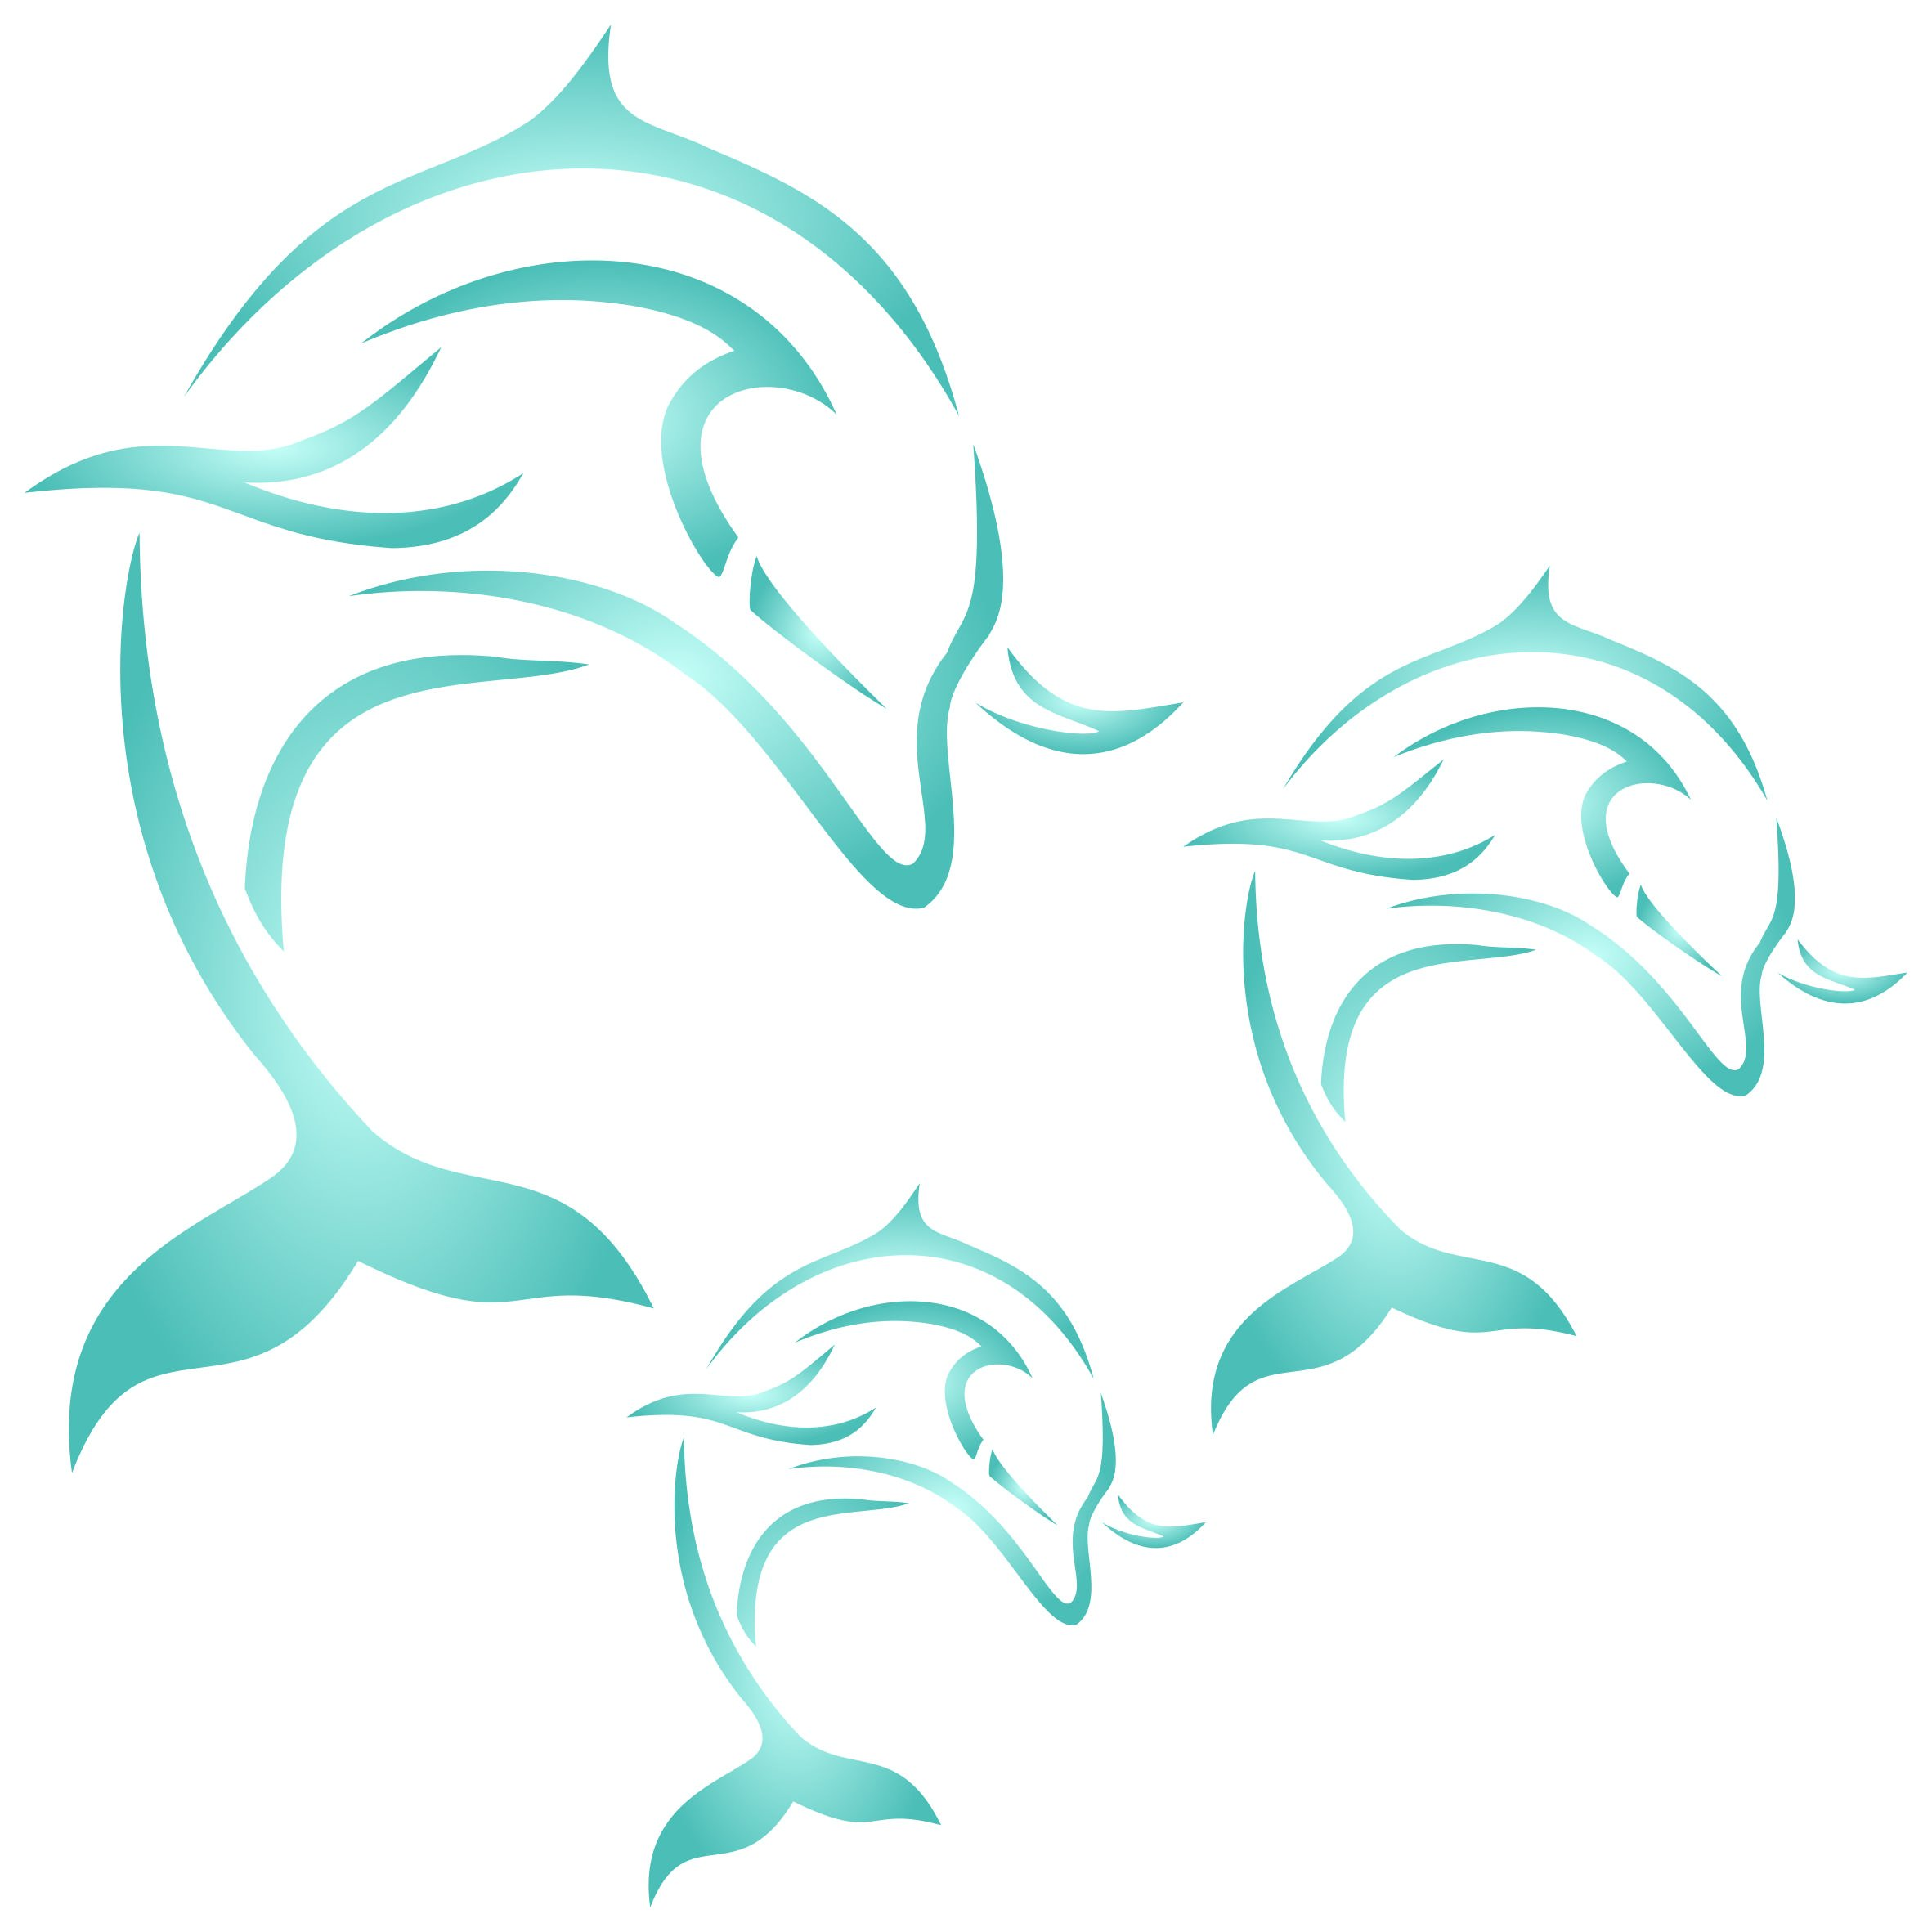 Dolphin Mural Stencil - (size 6.5''w x 6.5''h) Reusable Wall Stencils for Painting - Best Quality Decor Ideas - Use on Walls, Floors, Fabrics, Glass, Wood, and More... by Stencils for Walls